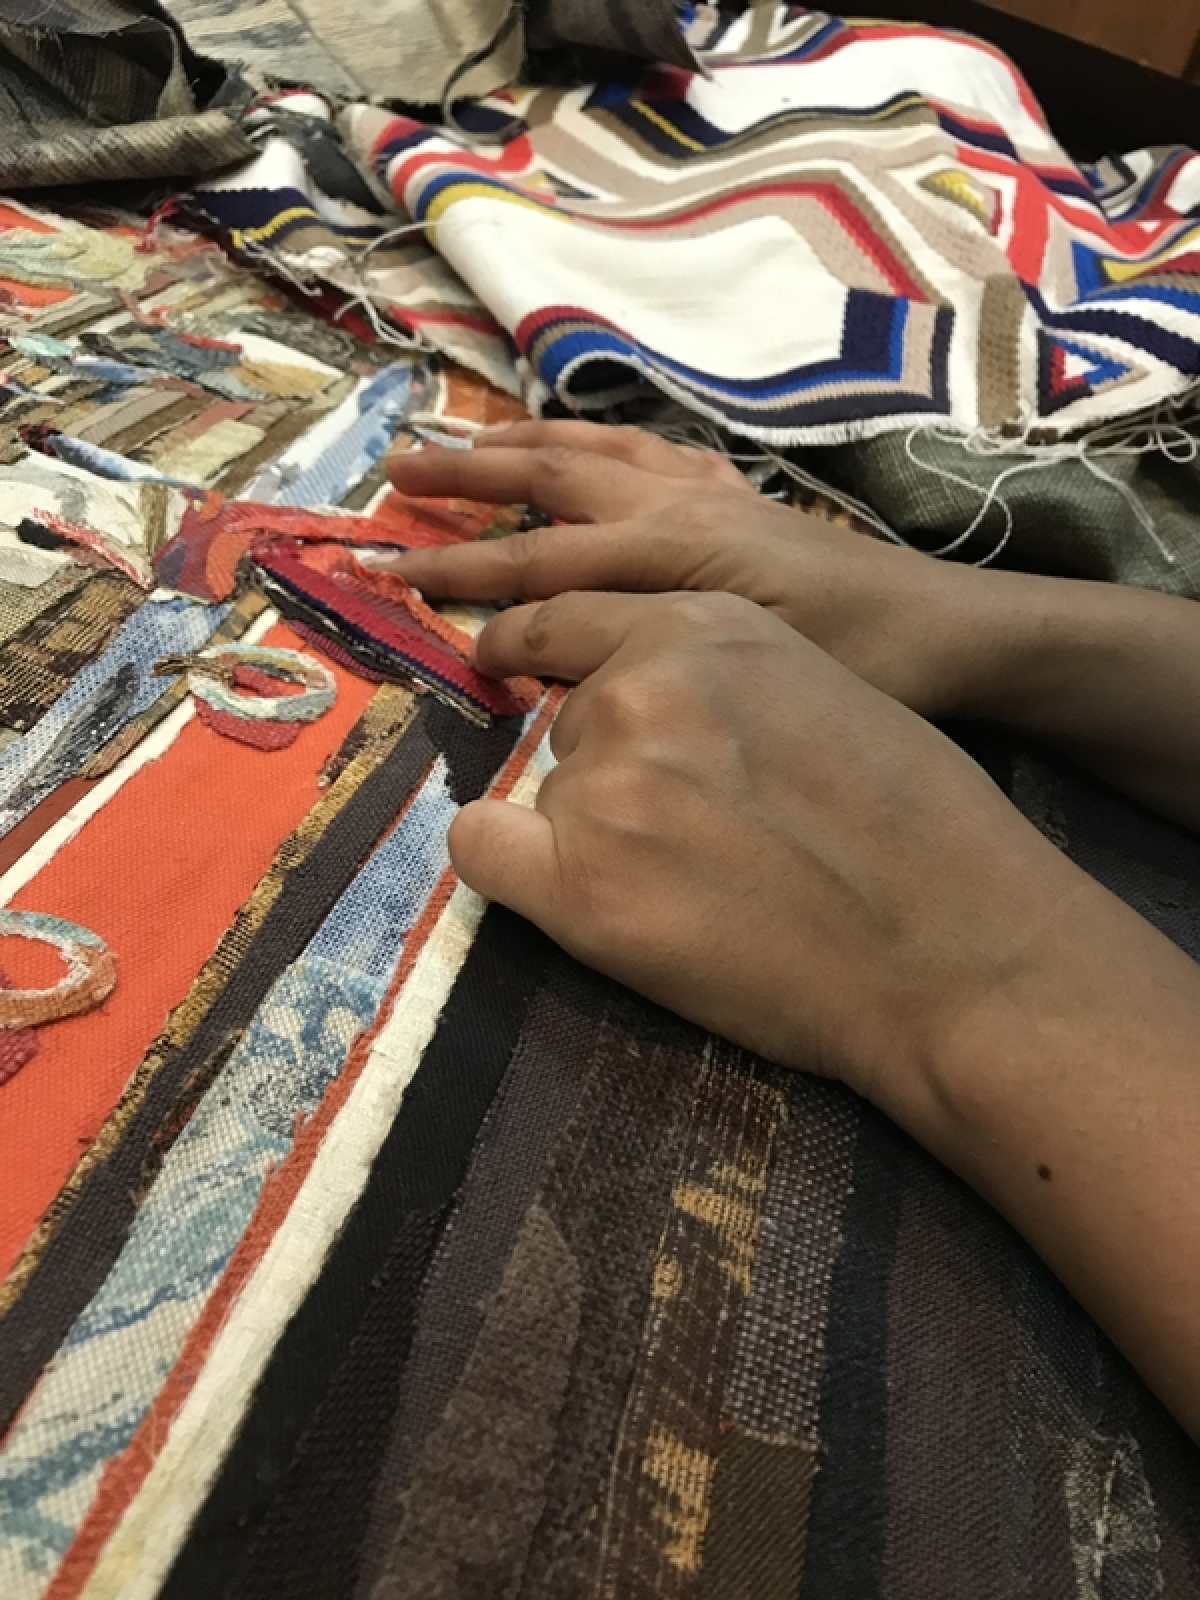 'The possibilities of working with textiles are limitless and magical' says Blue Bicycle Design founder Arrti Mansinghka